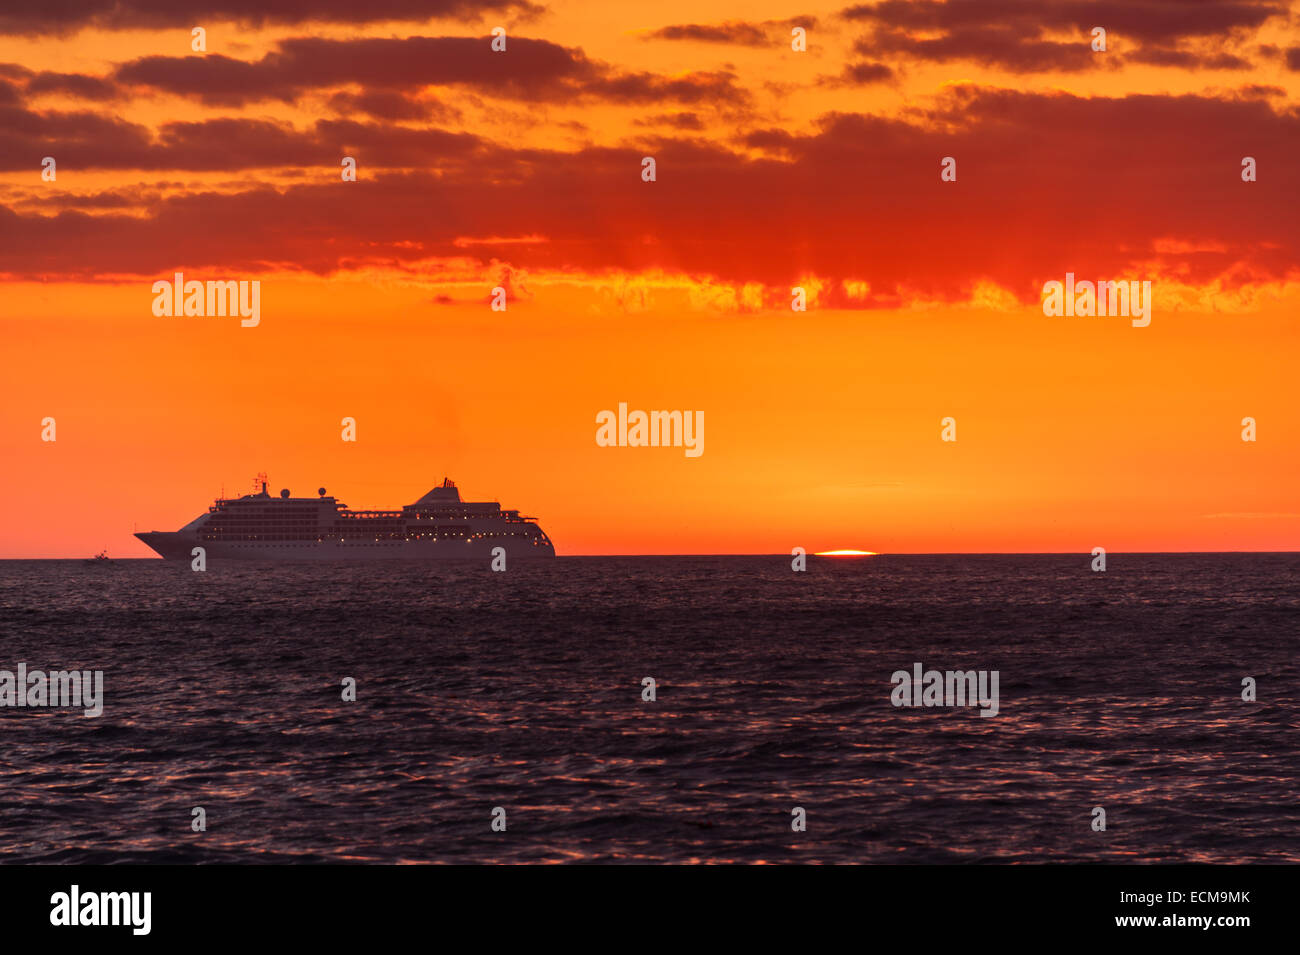 A cruise ship heads towards Bar Harbor, Maine, just as the sun begins to peek above the horizon. Stock Photo